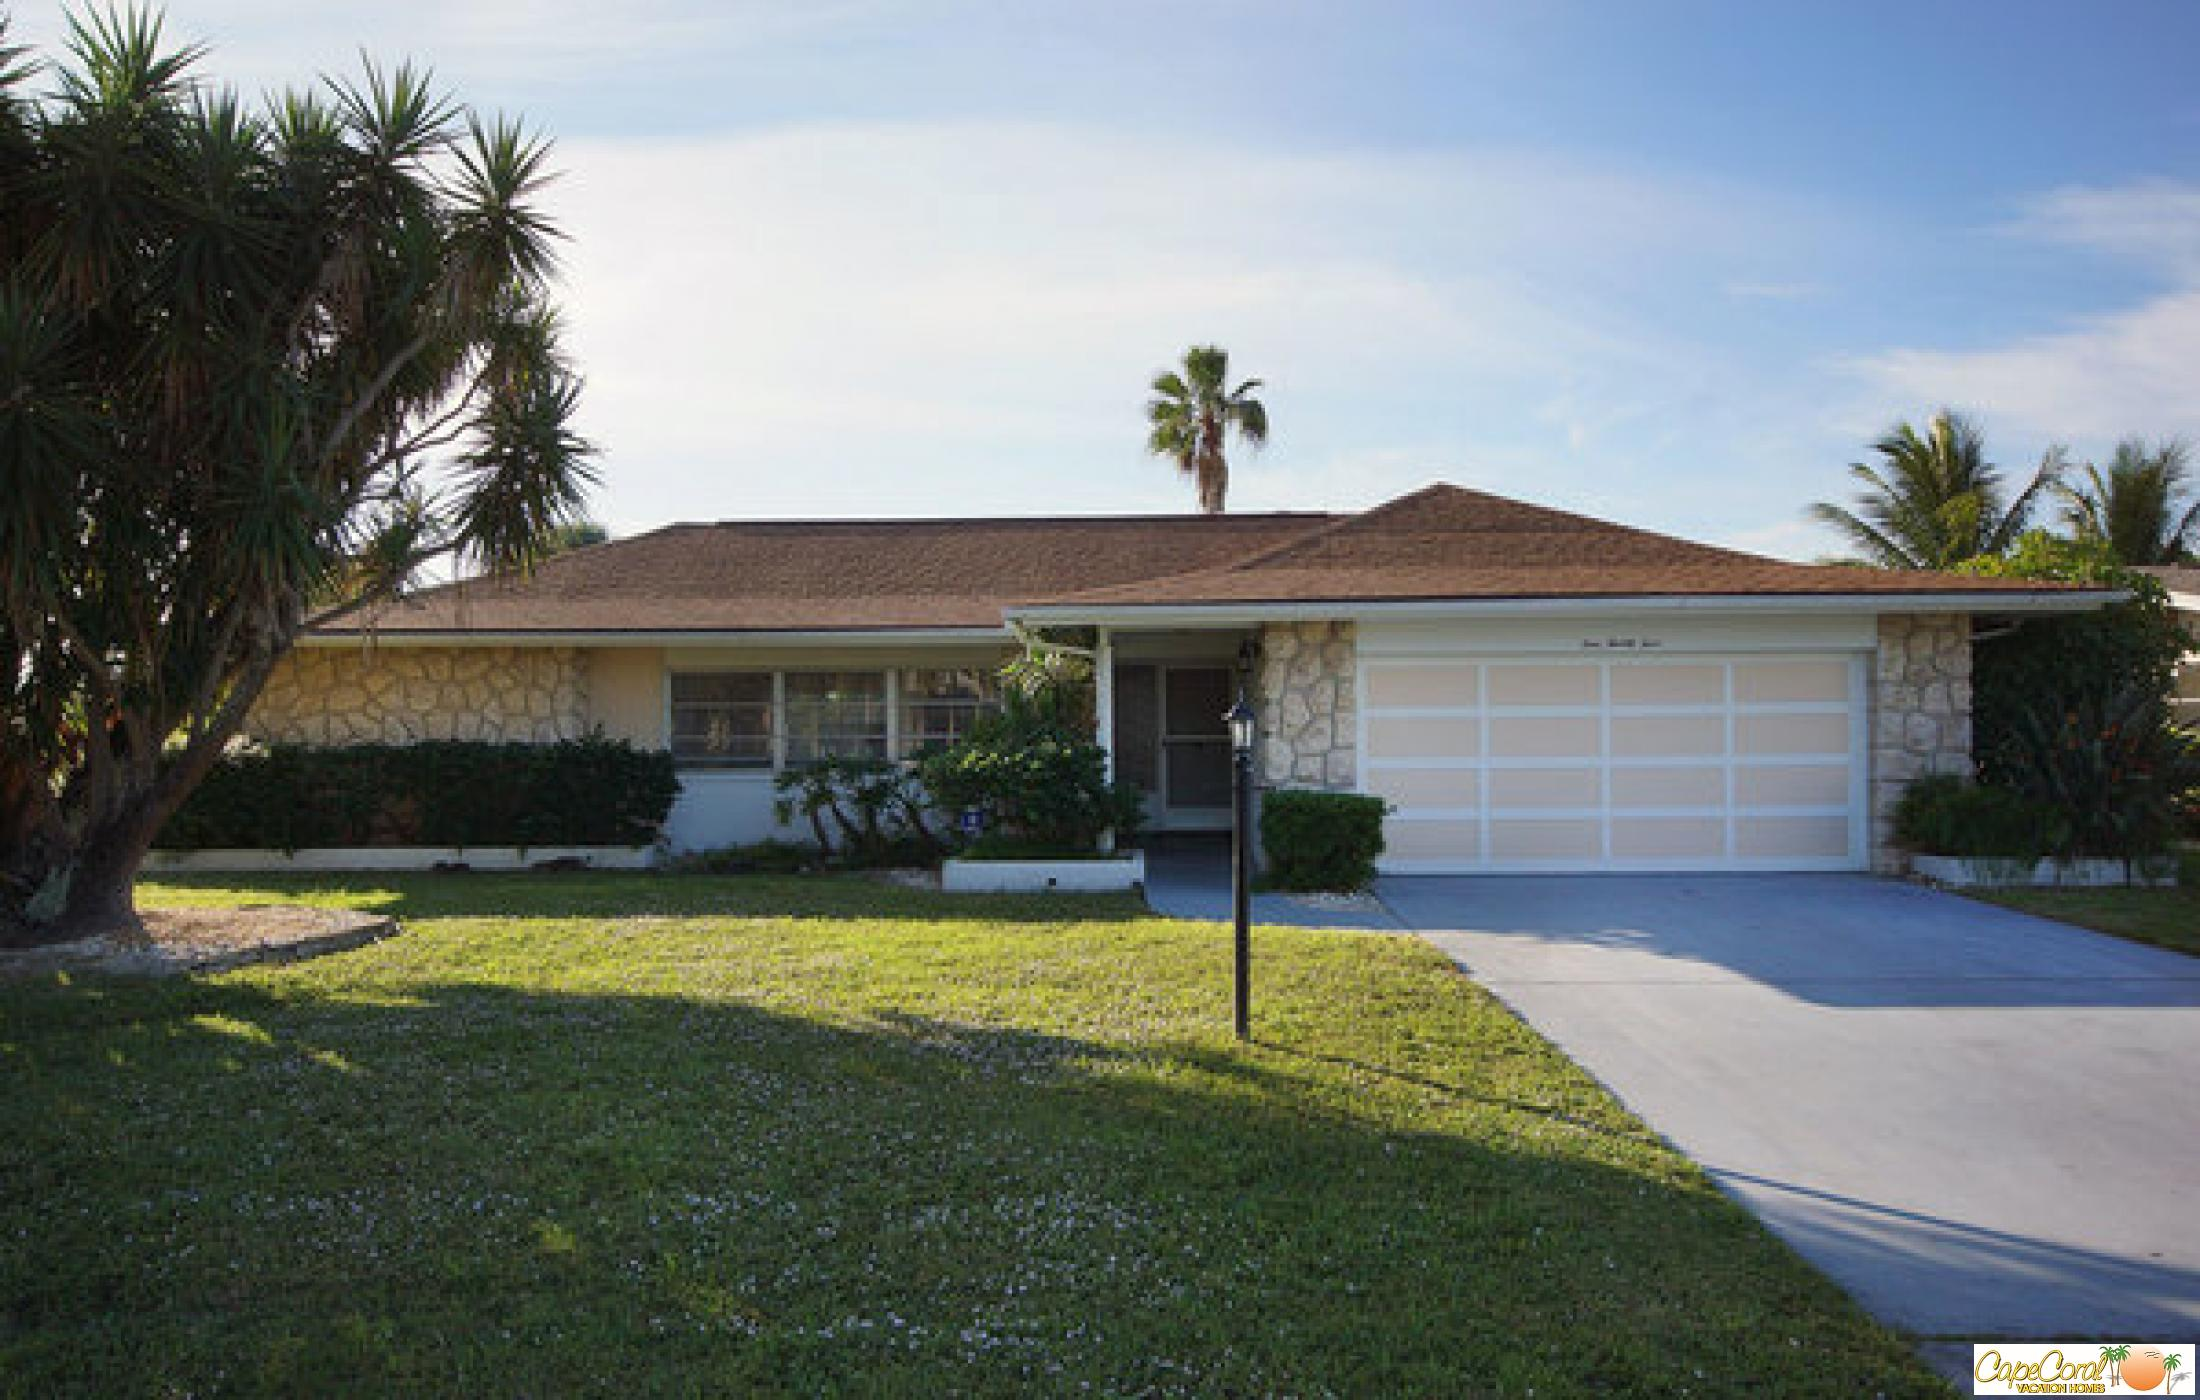 Mermaids Purse Cape Coral Vacation Homes And Property